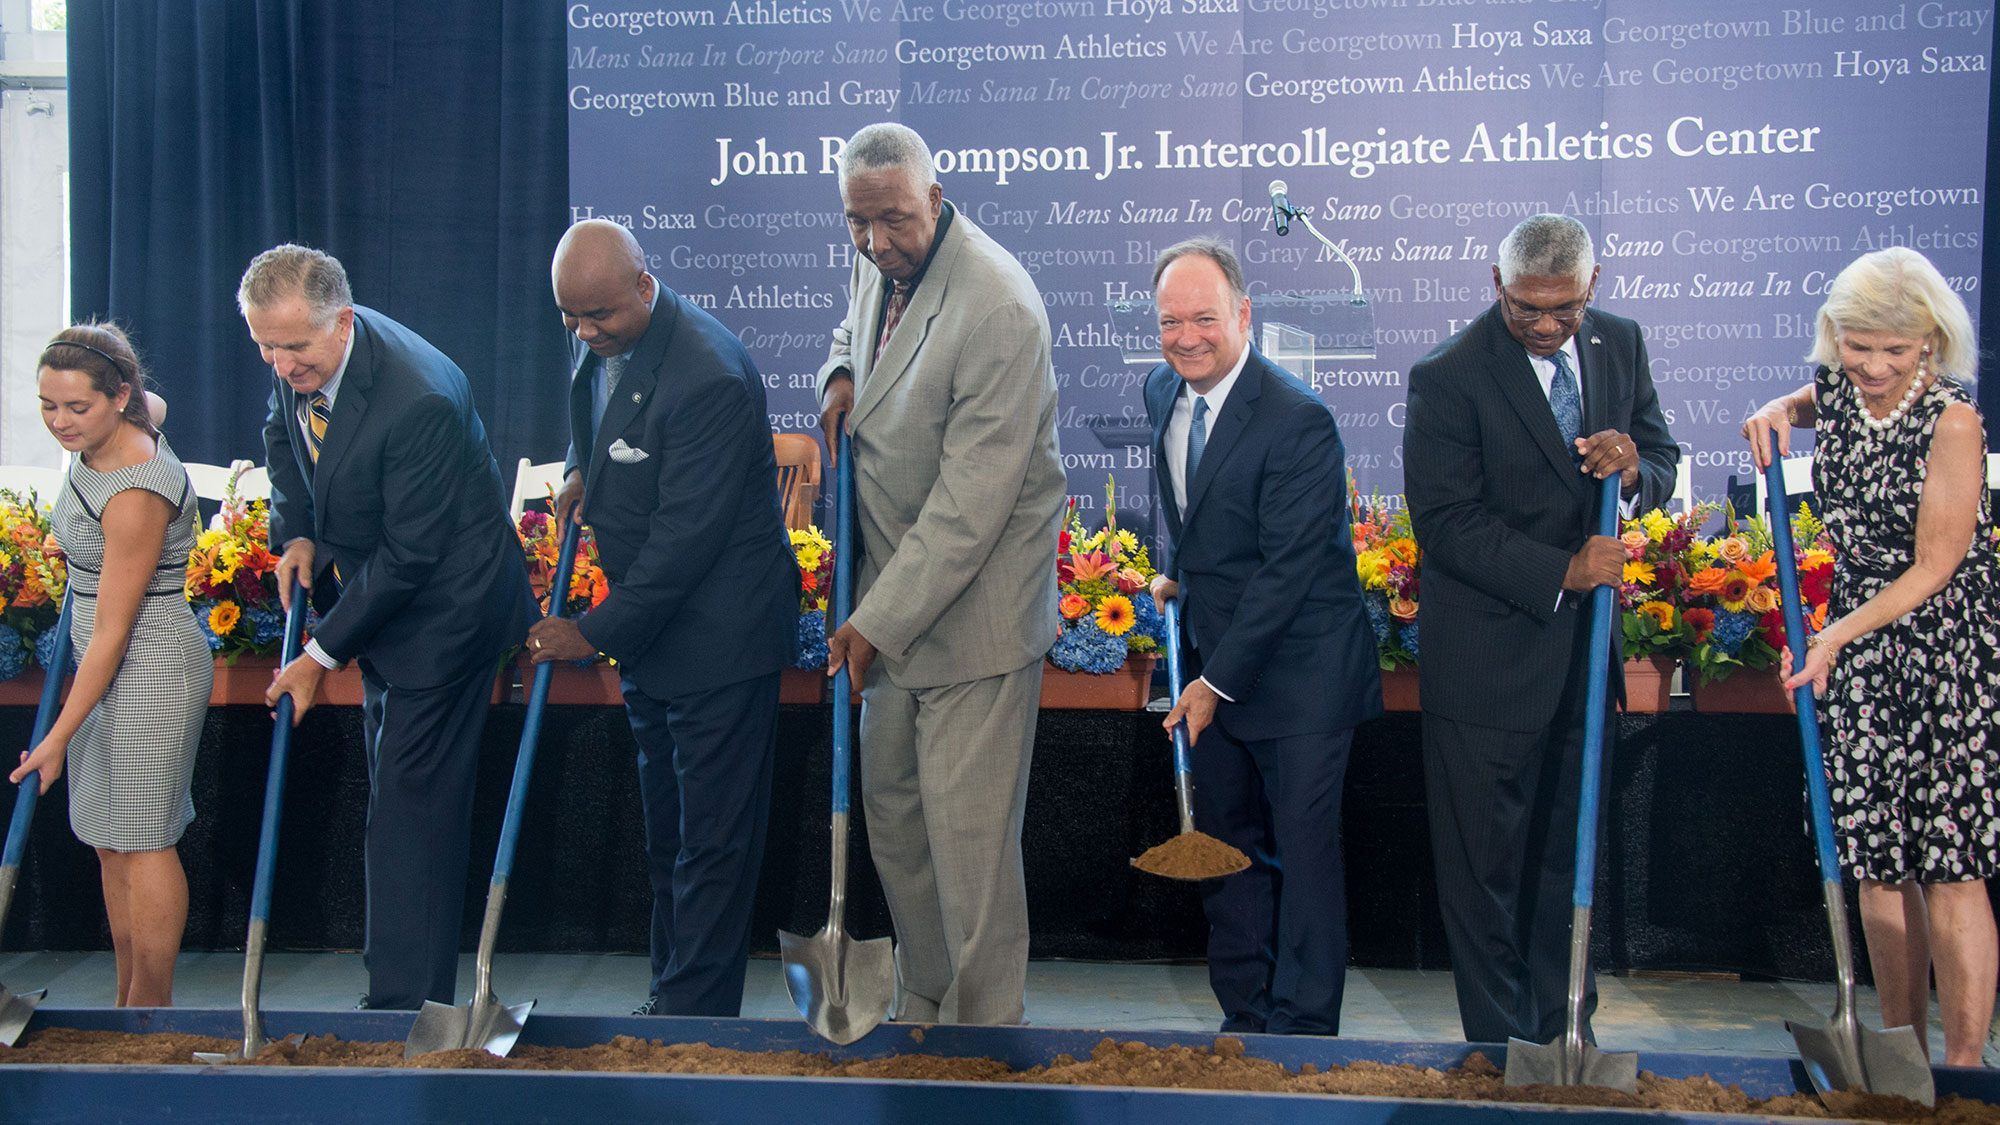 Alumni donors and other members of the Georgetown community join John Thompson Jr. and Georgetown President John J. DeGioia with shovels for the ground-breaking.